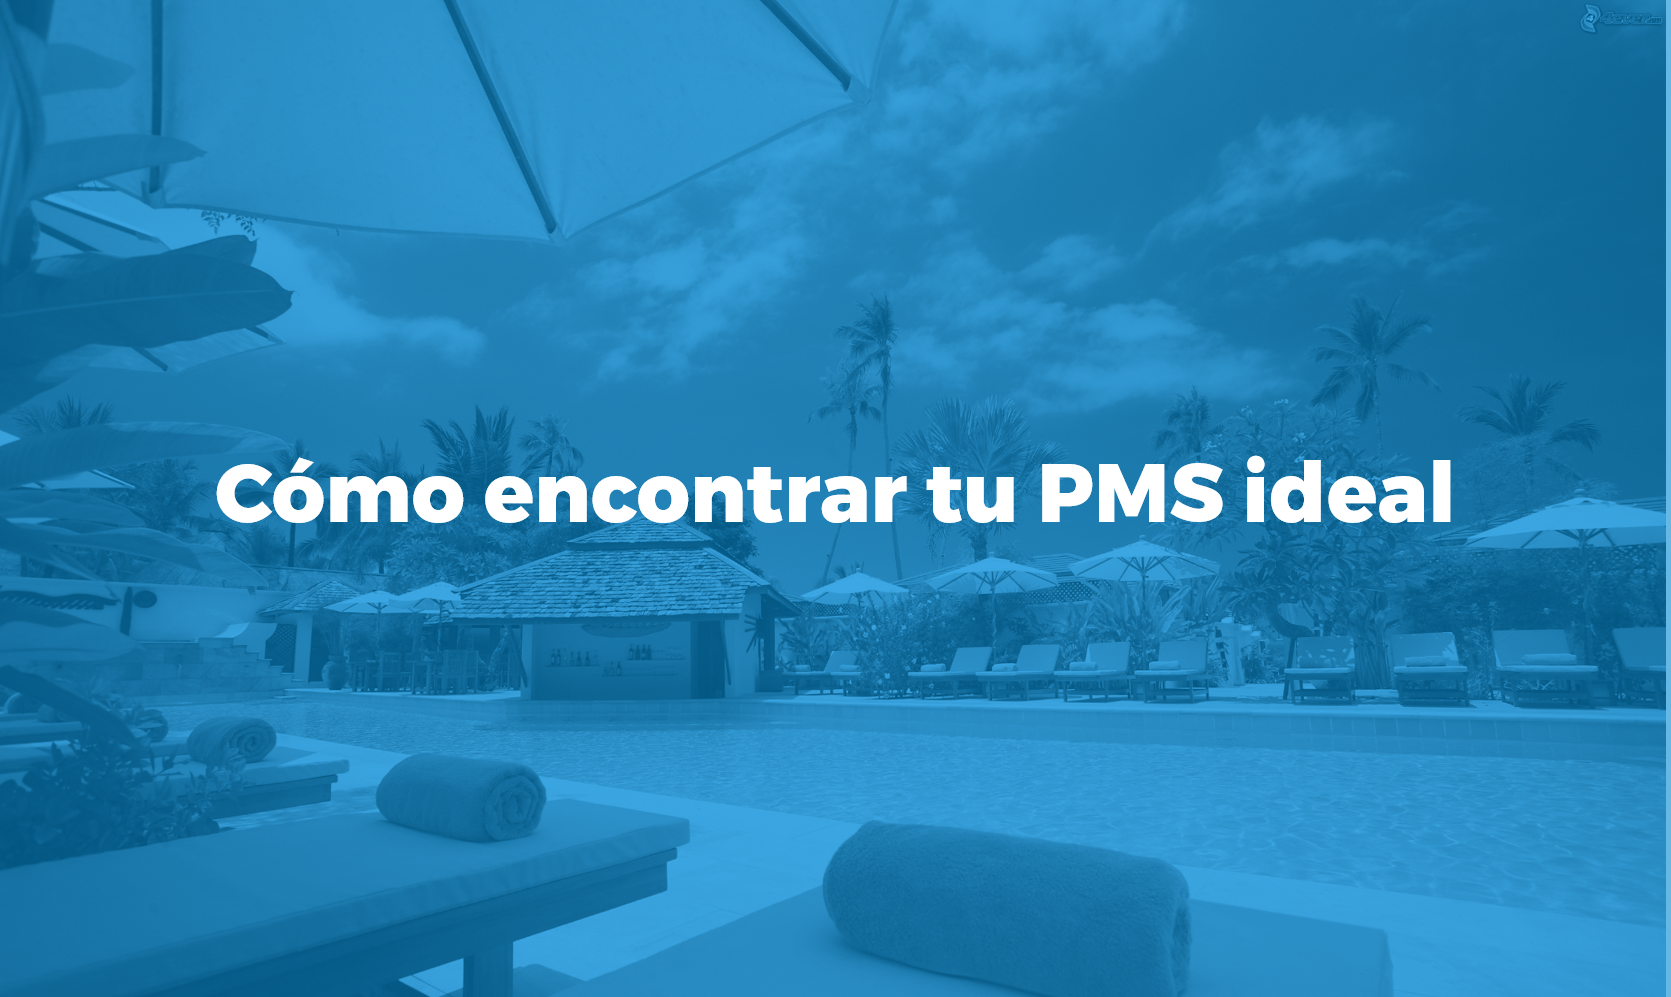 Cómo encontrar tu pms ideal Bismart